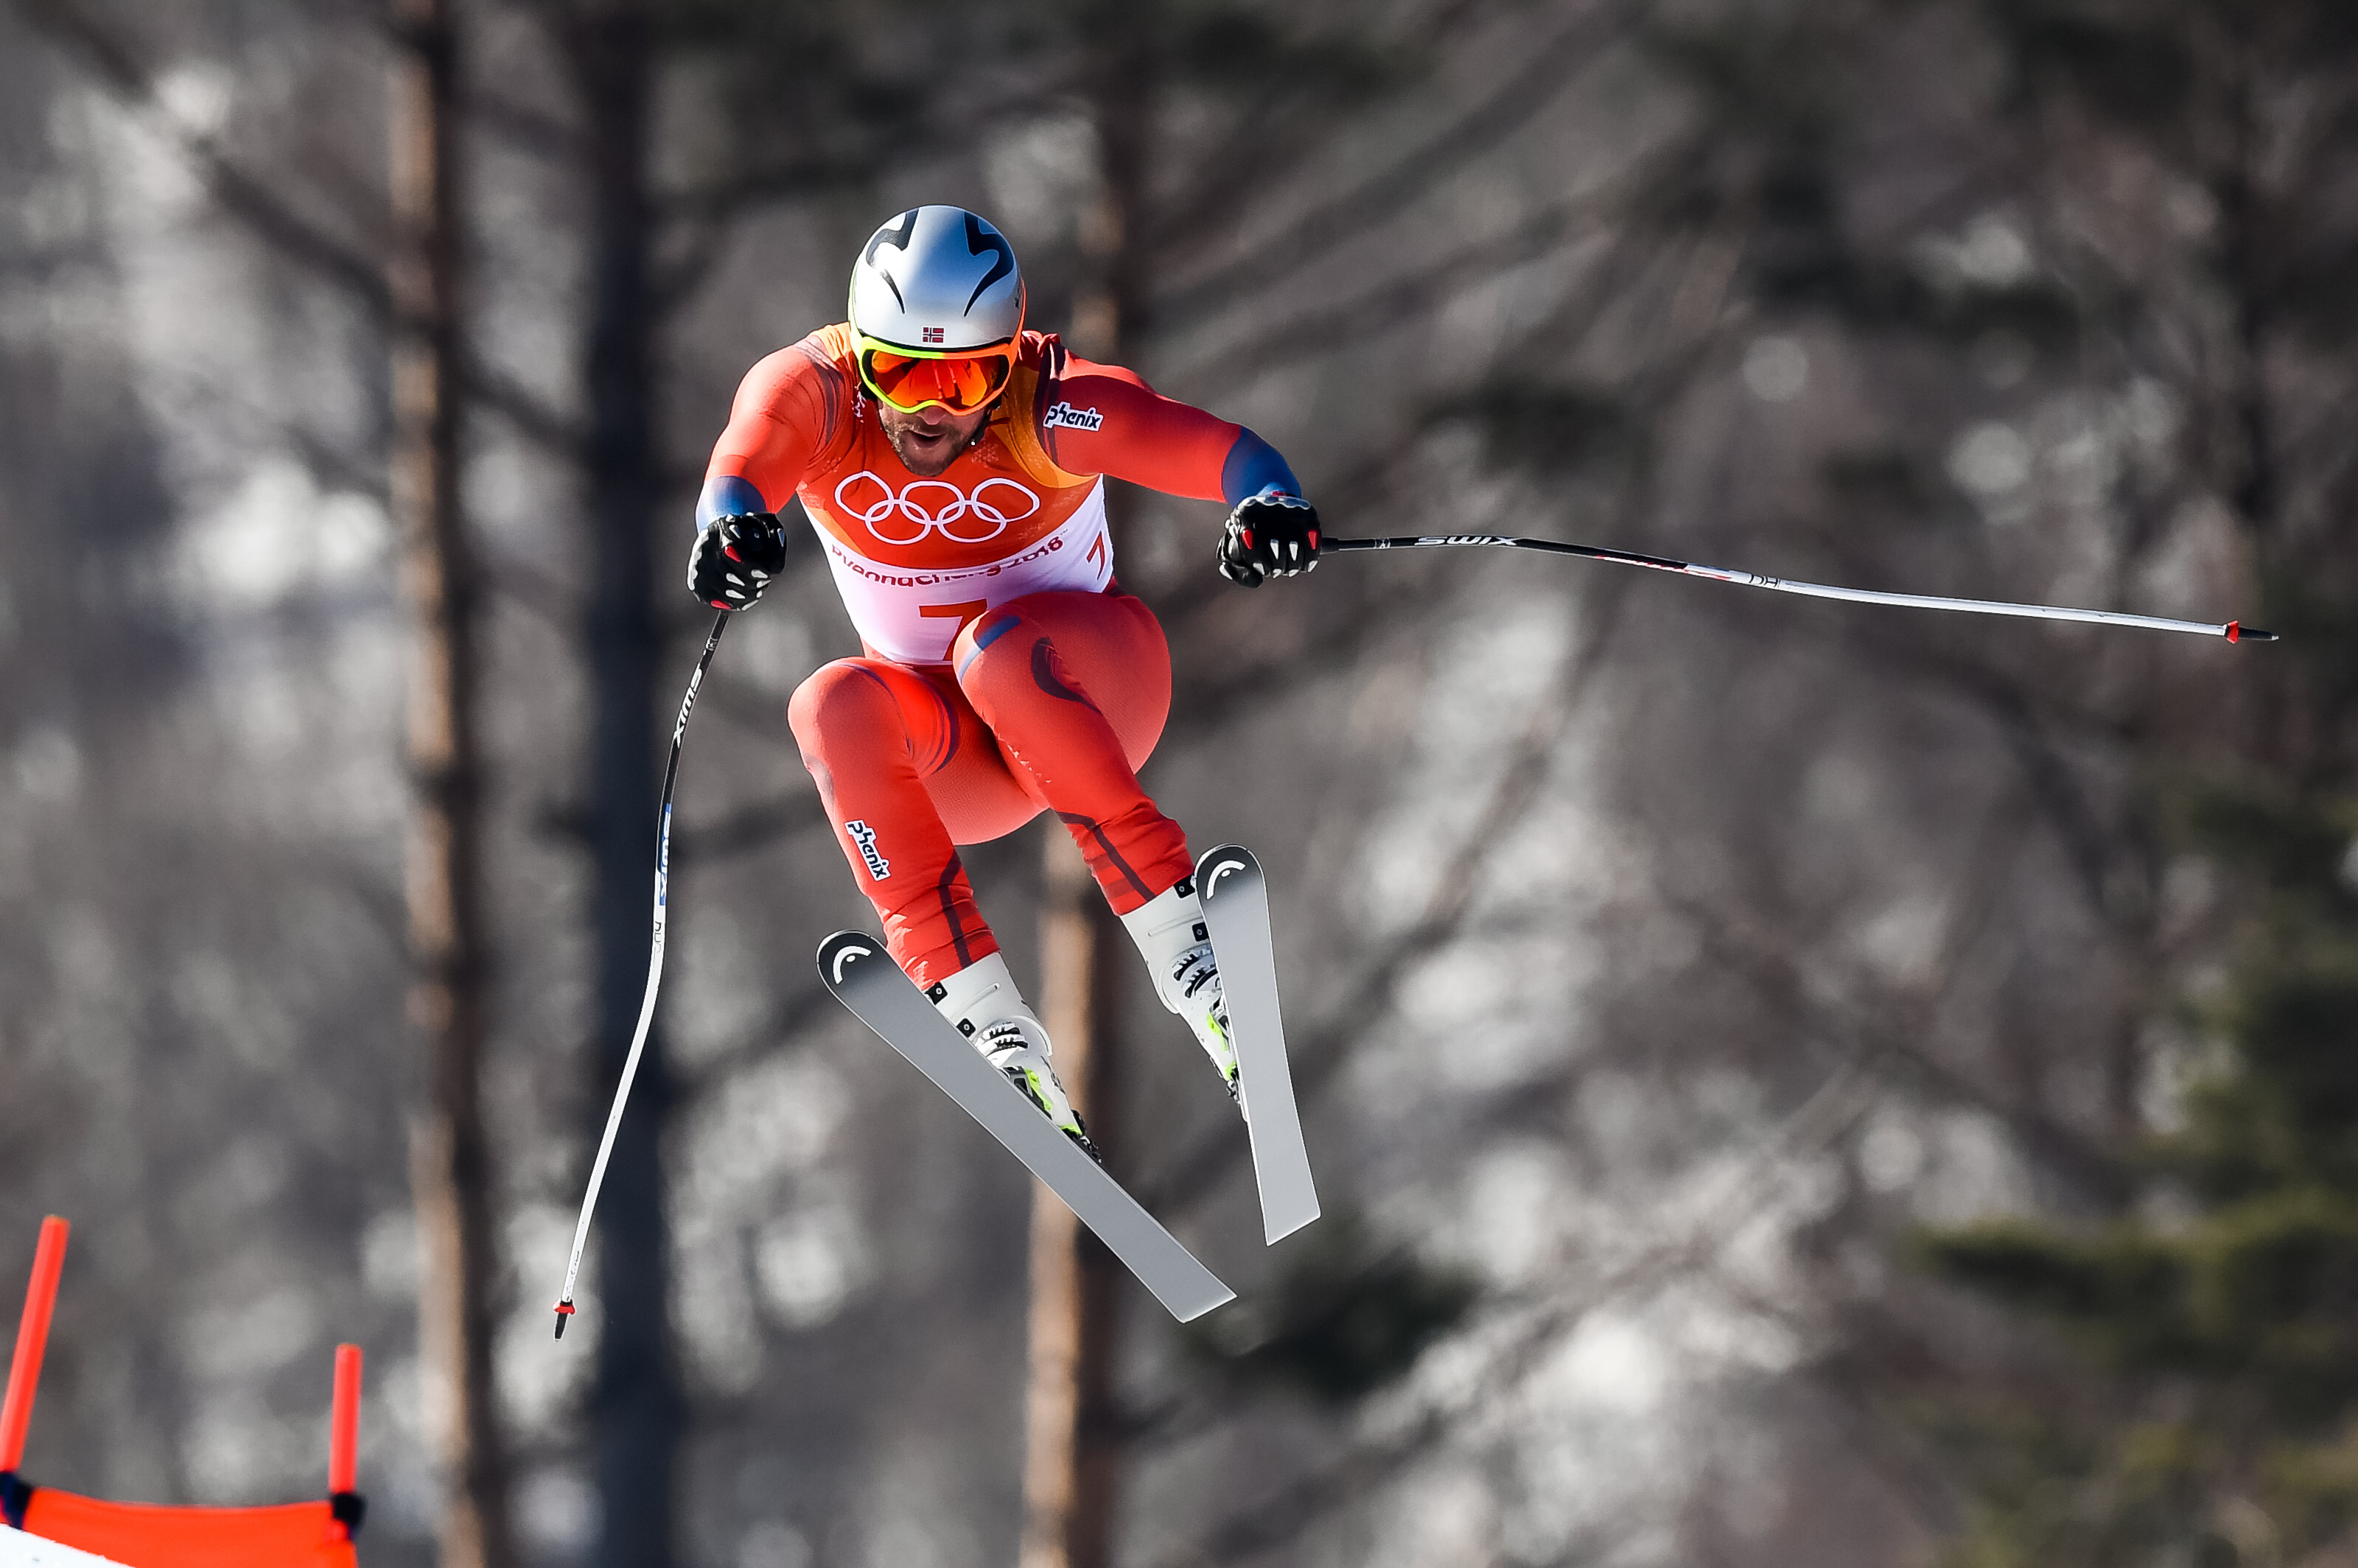 Olympic results 2018: Norway's Aksel Lund Svindal wins gold in Men's Downhill